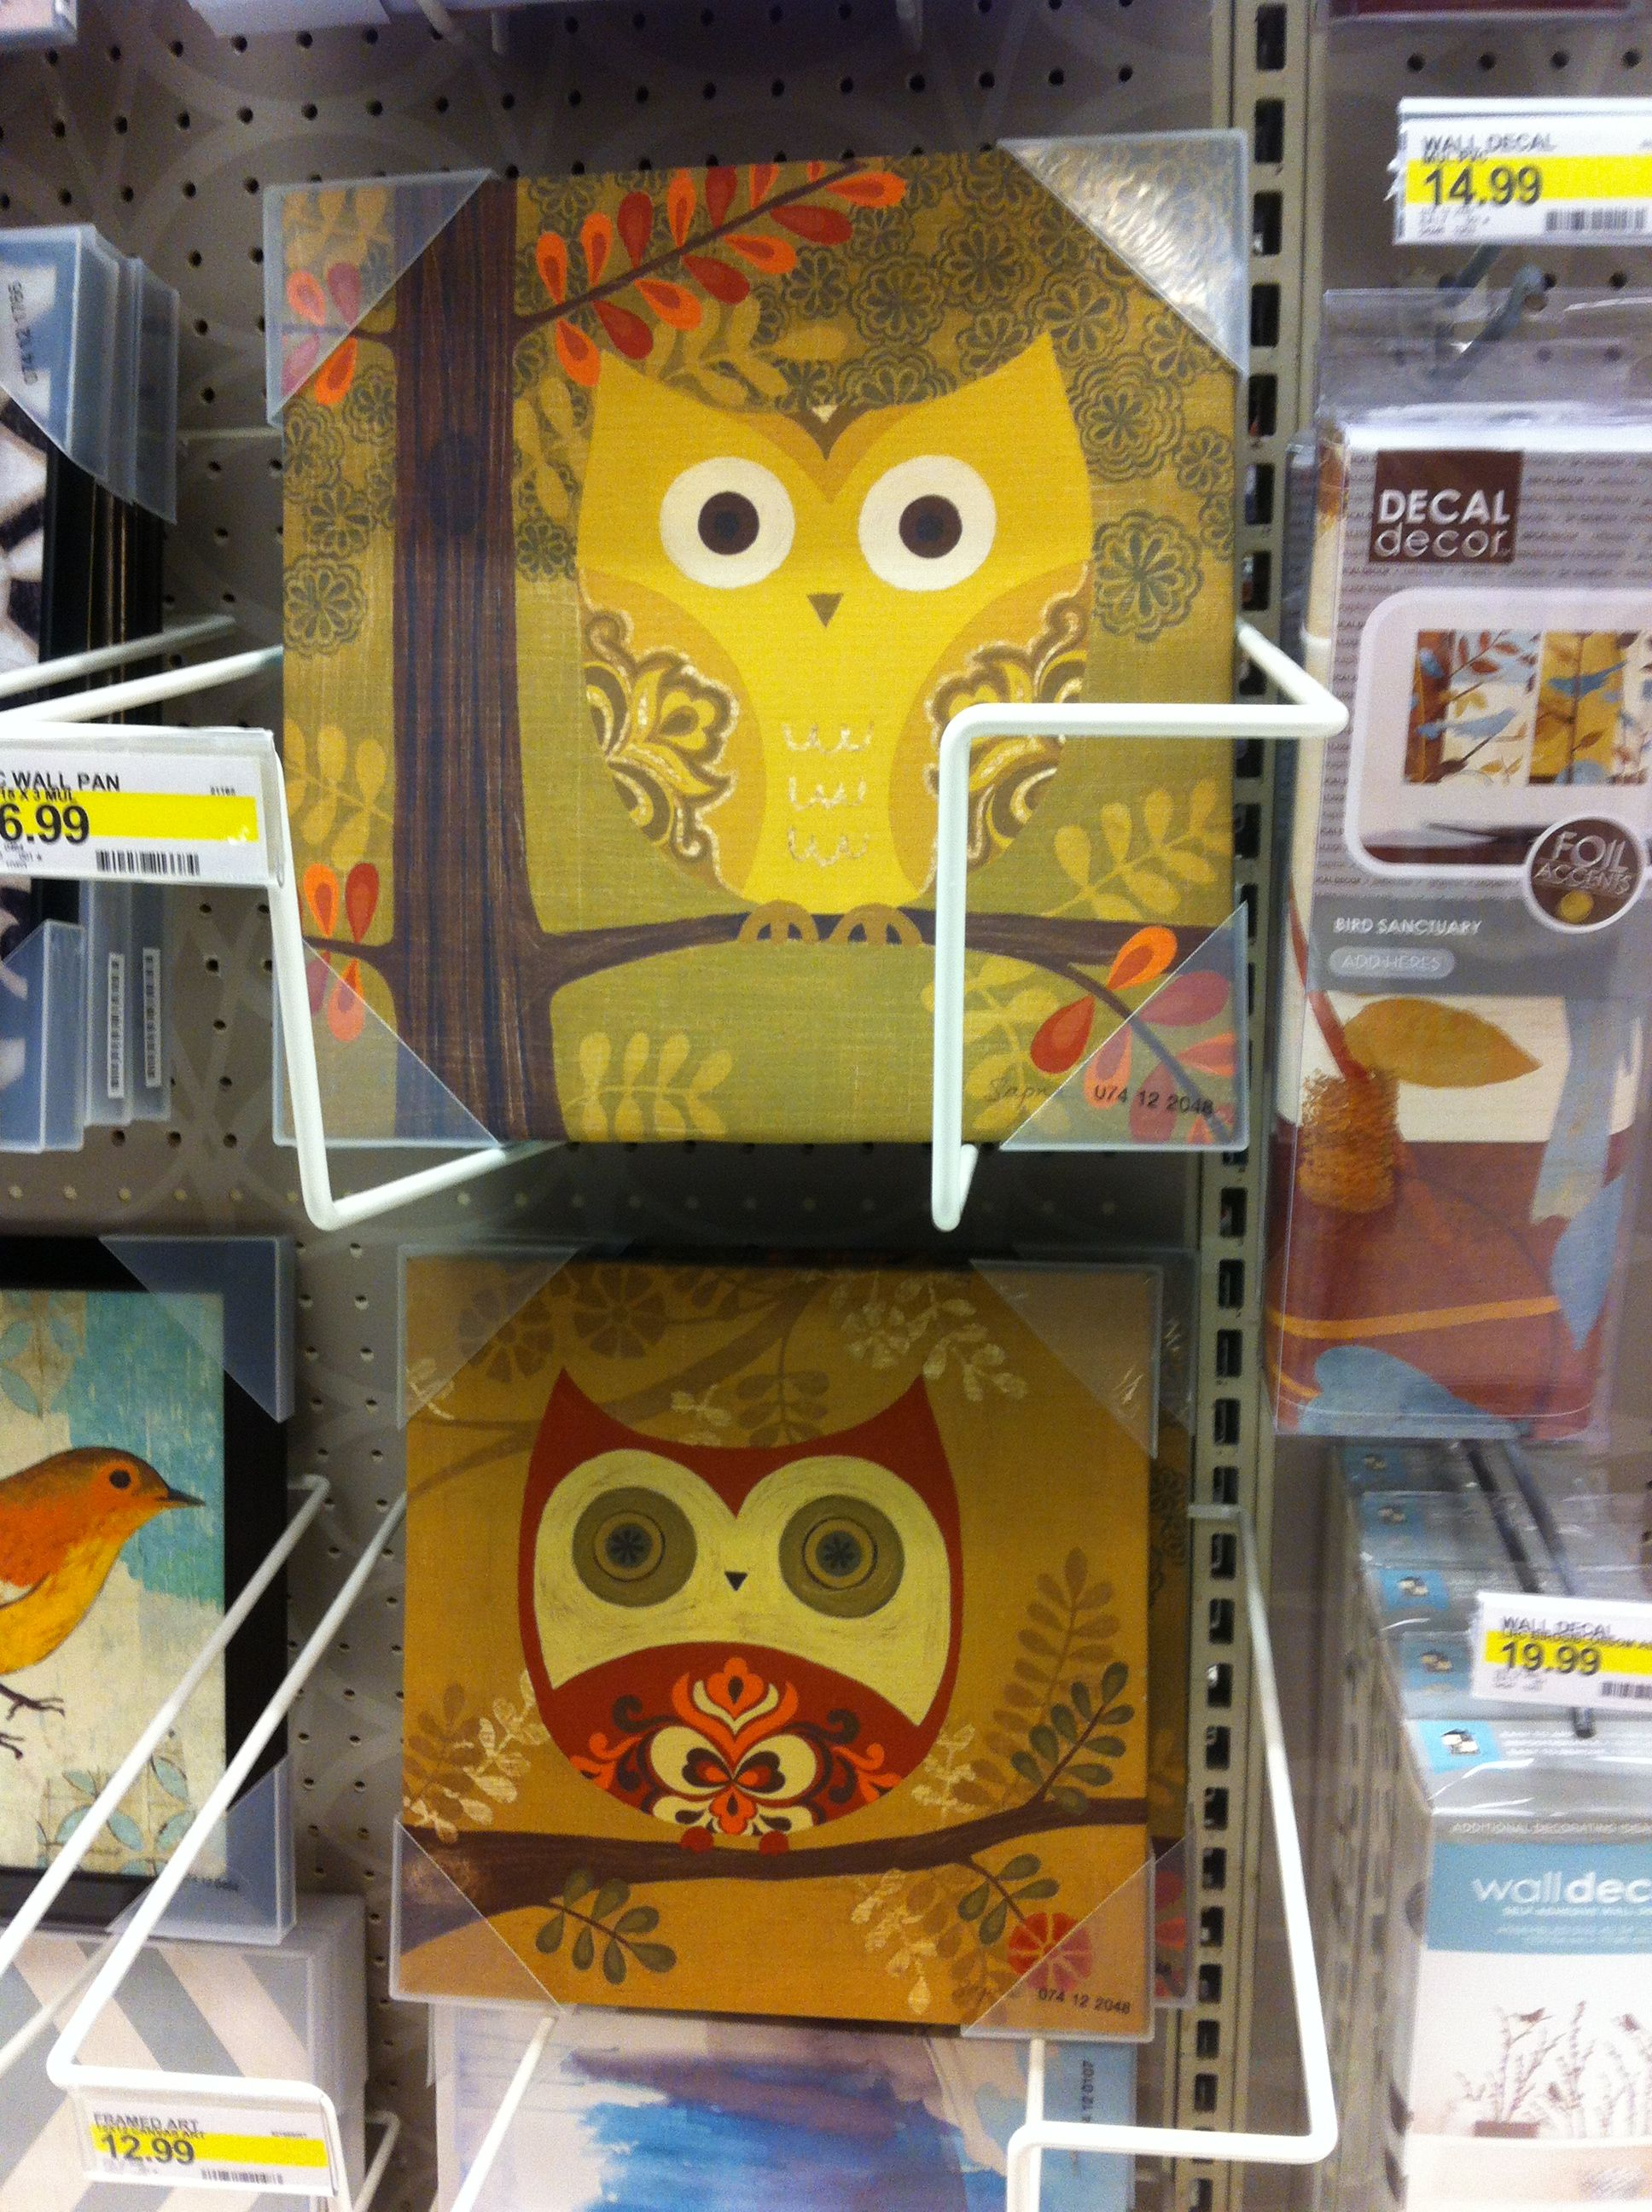 Canvas wall decor art by Sapna that can be found at Target stores ...